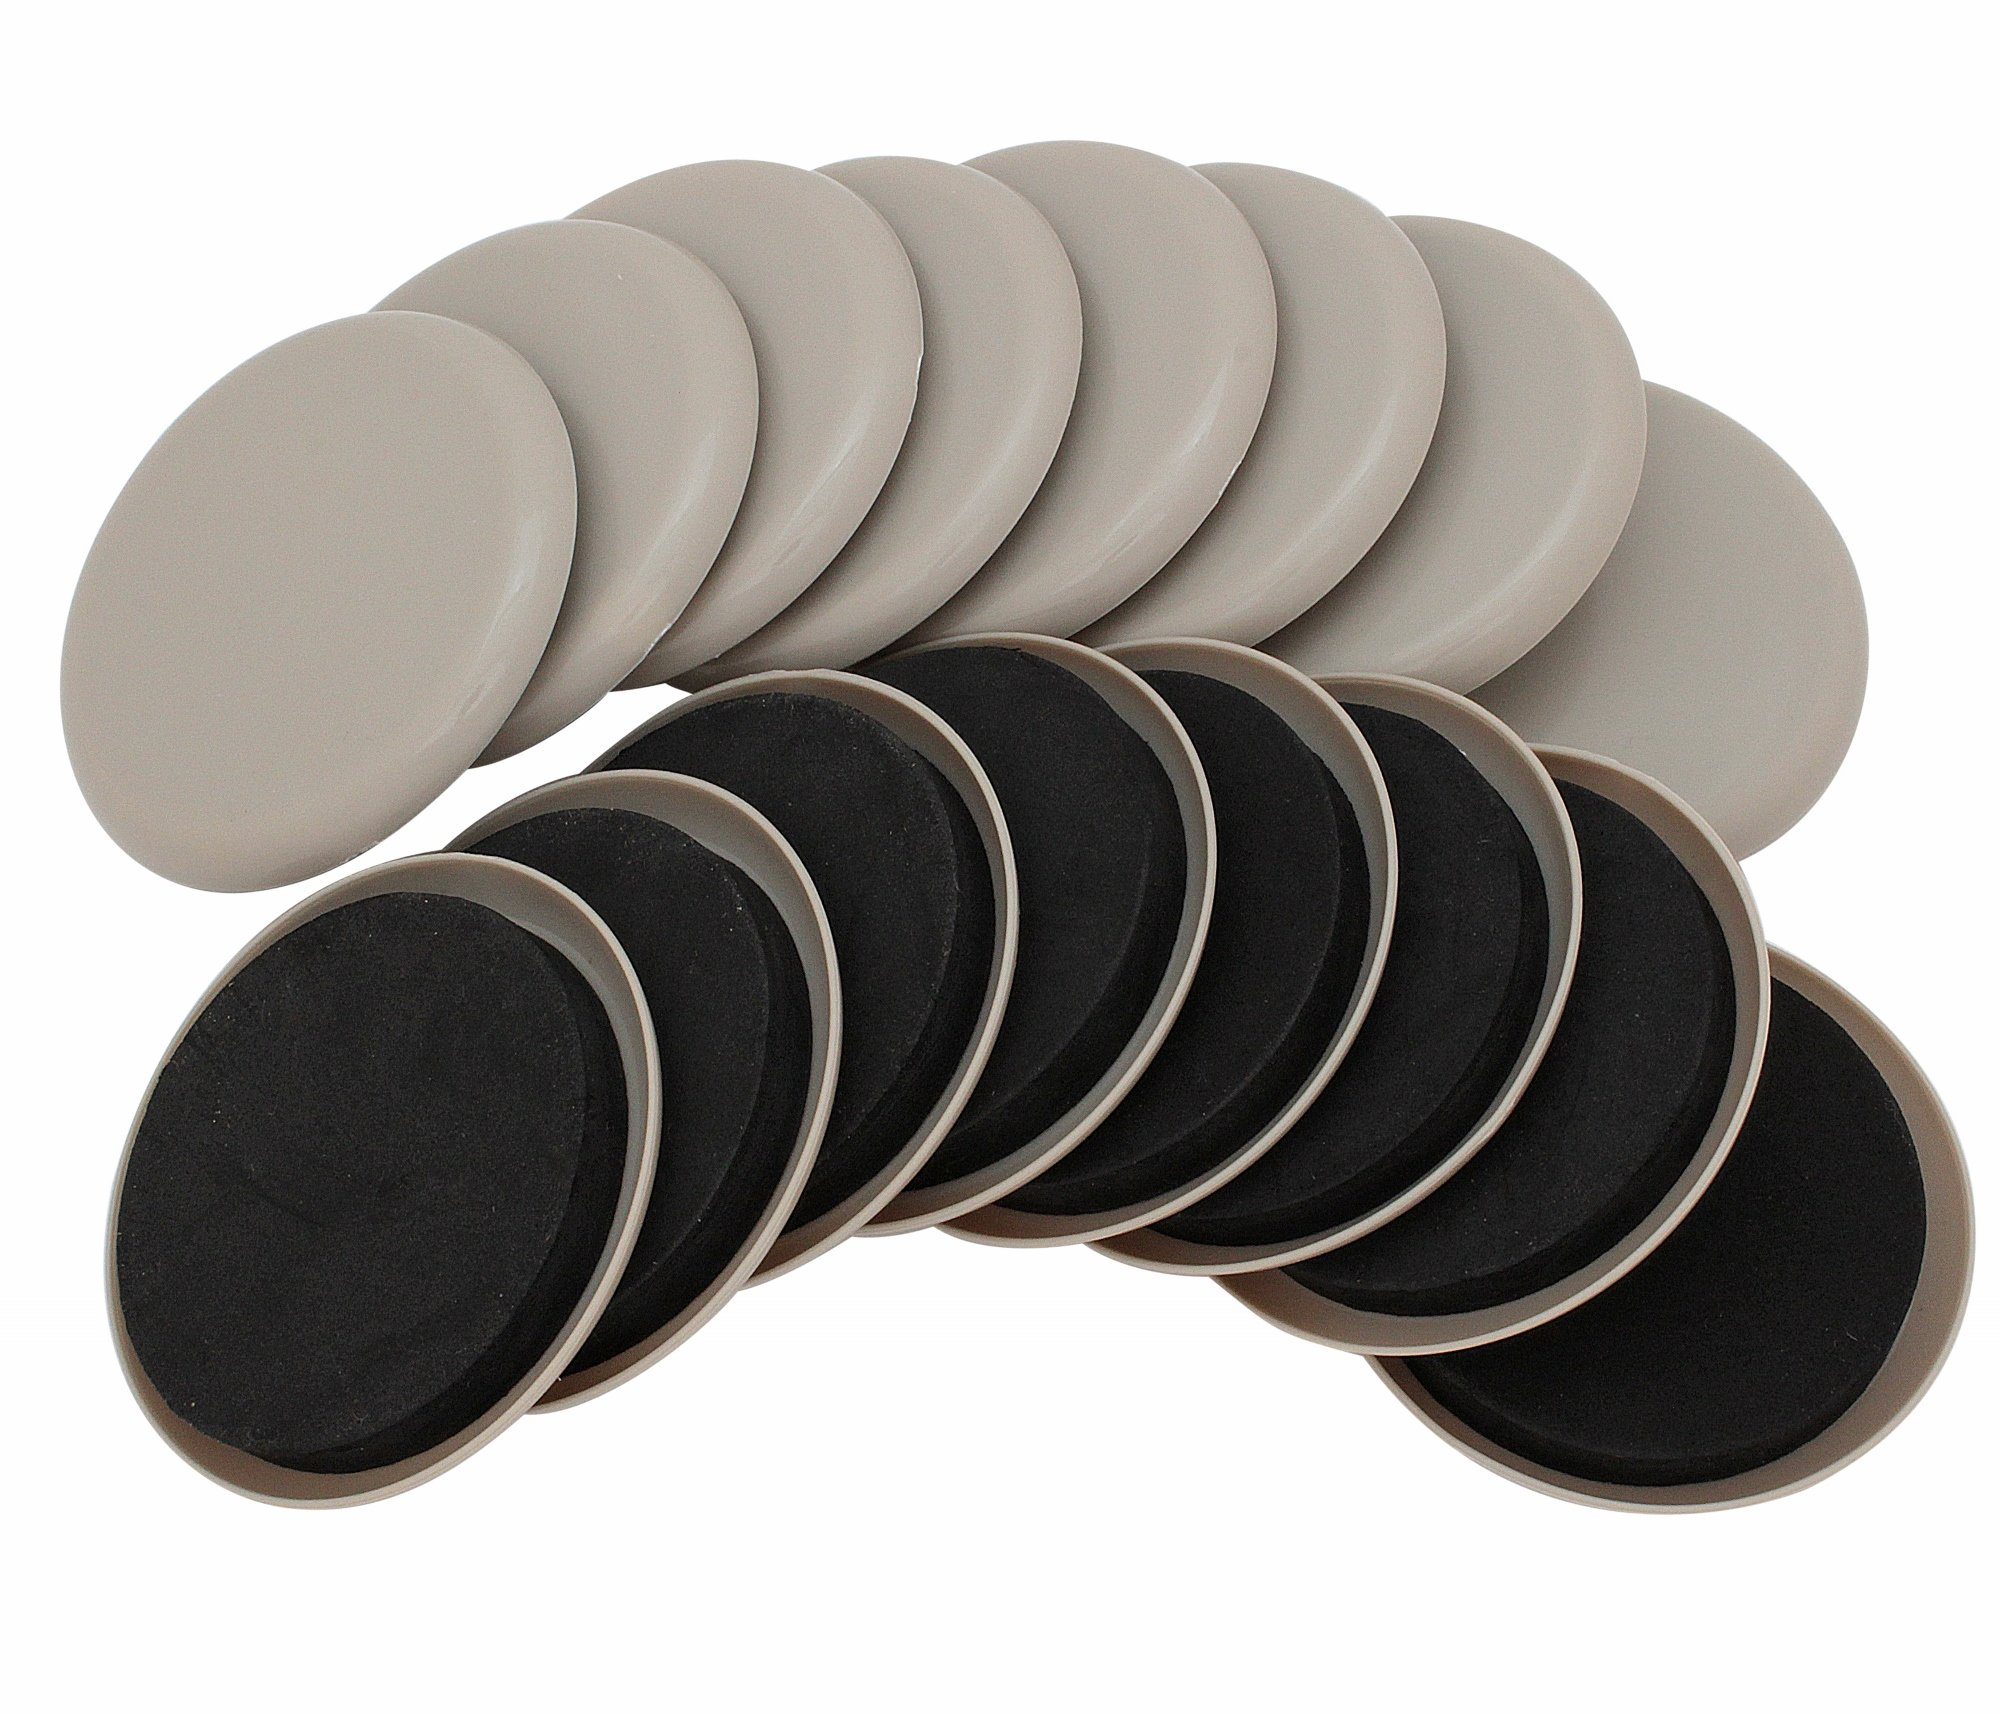 Smart Surface 8295 3-1/2'' Round Reusable Carpet Furniture Sliders 16-Pack in Resealable Bag